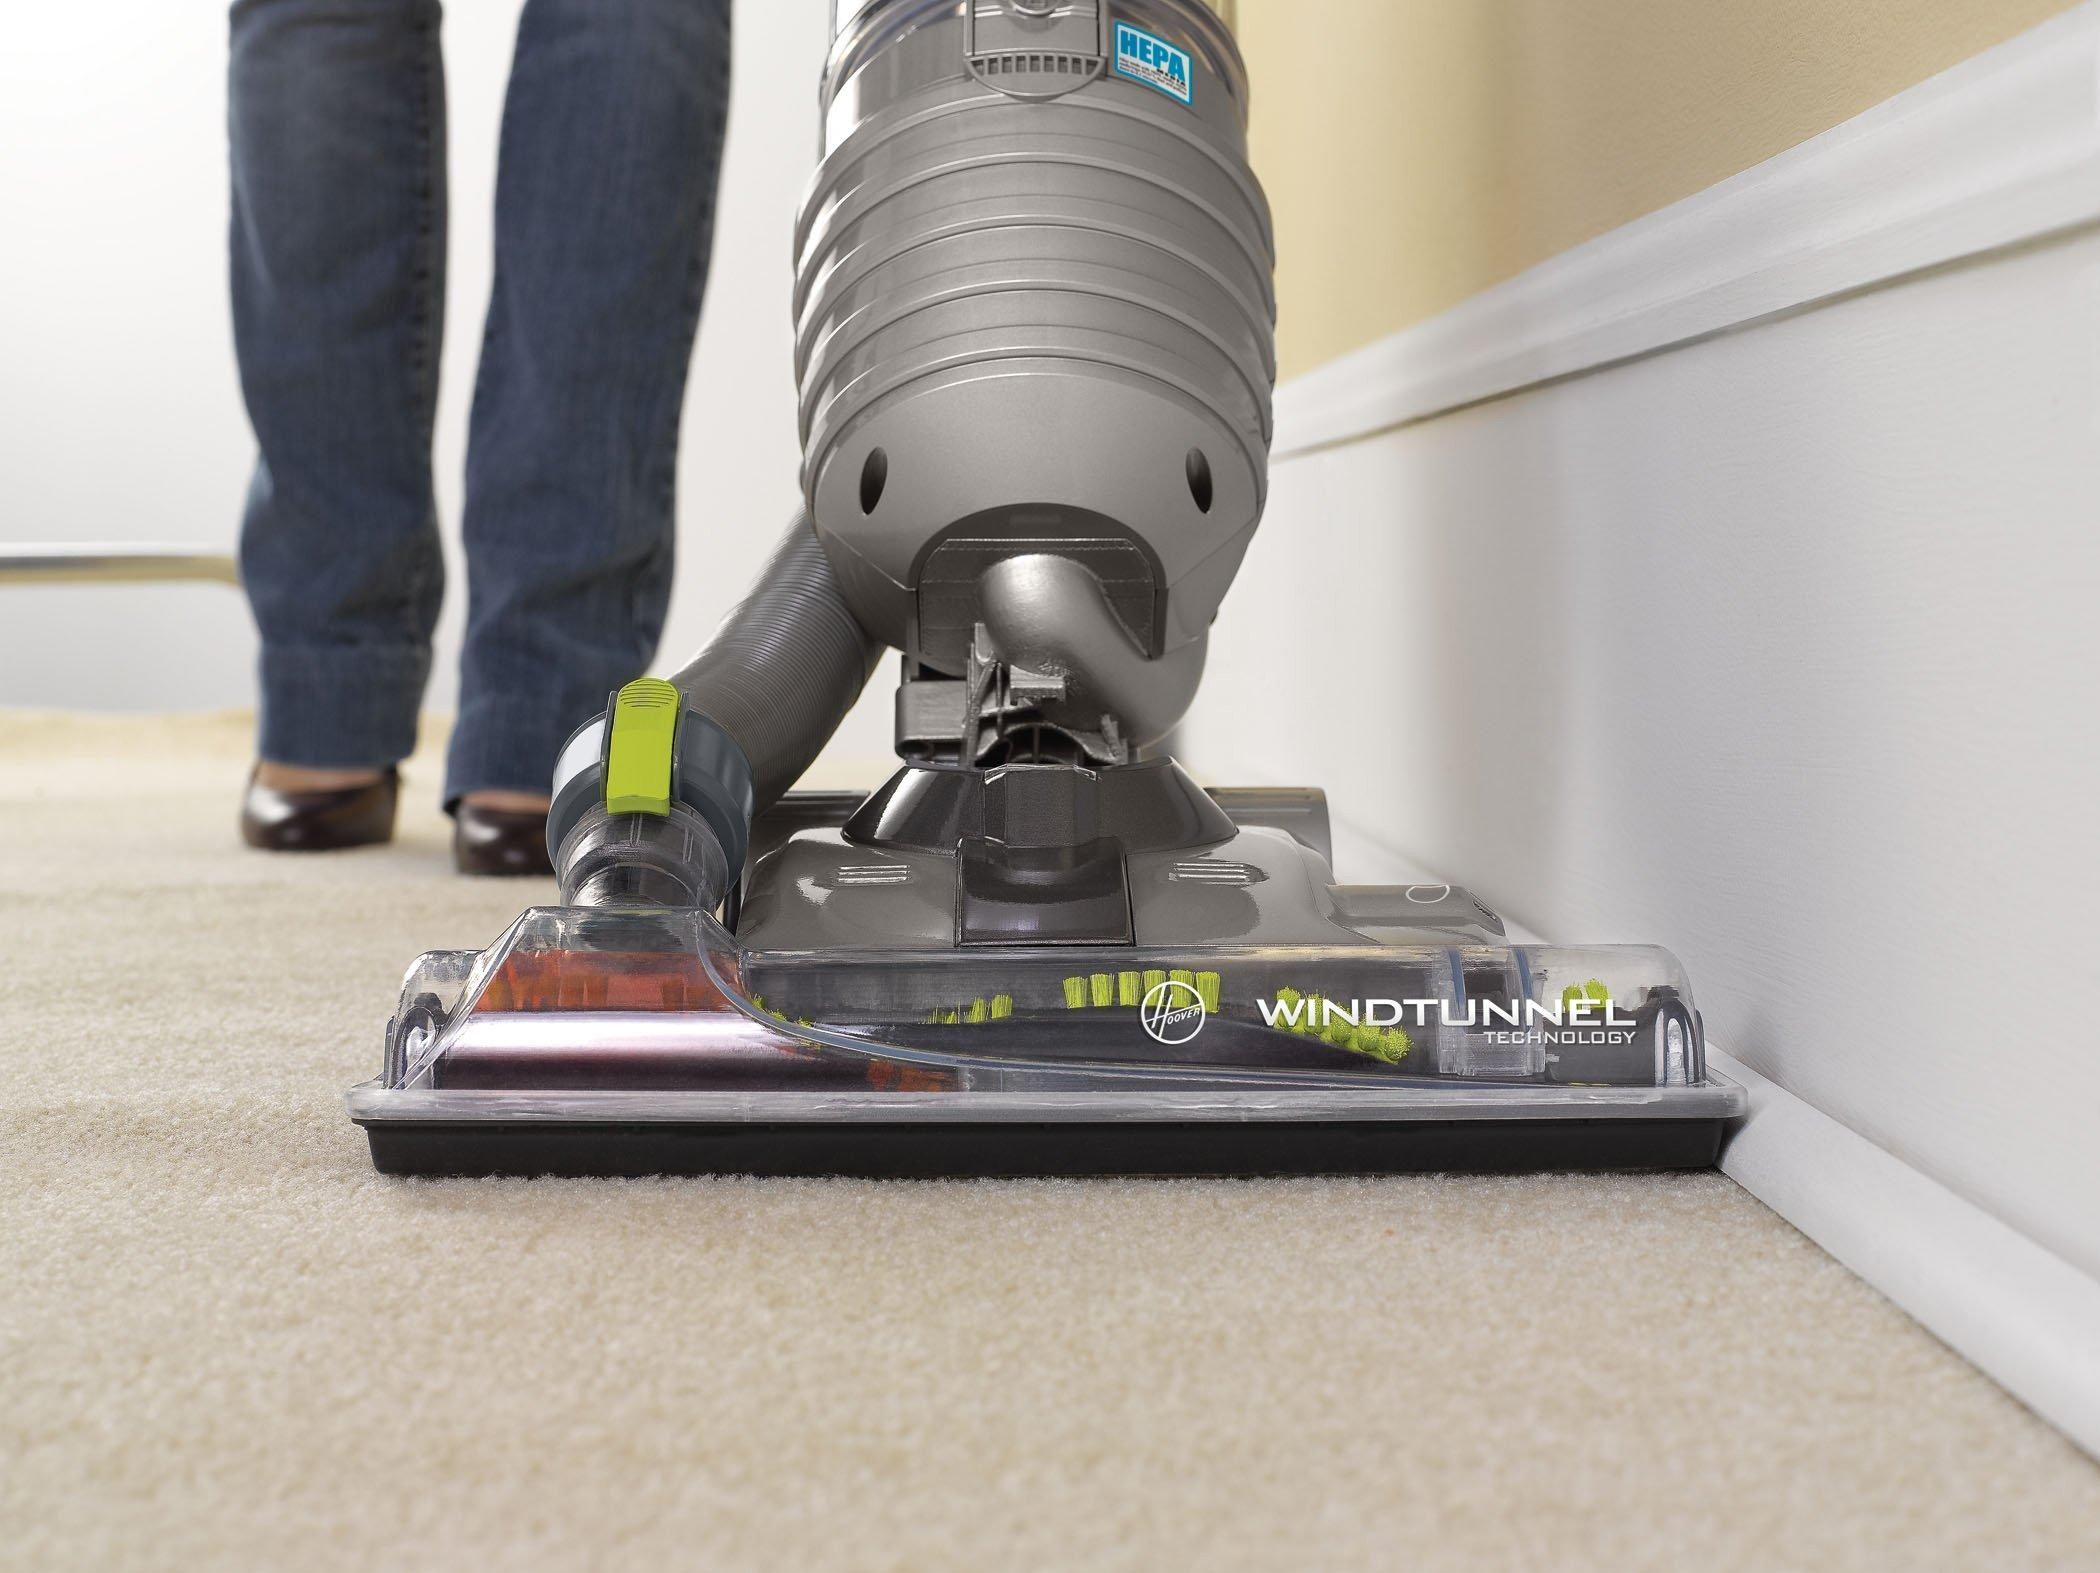 WindTunnel Air Upright Vacuum3